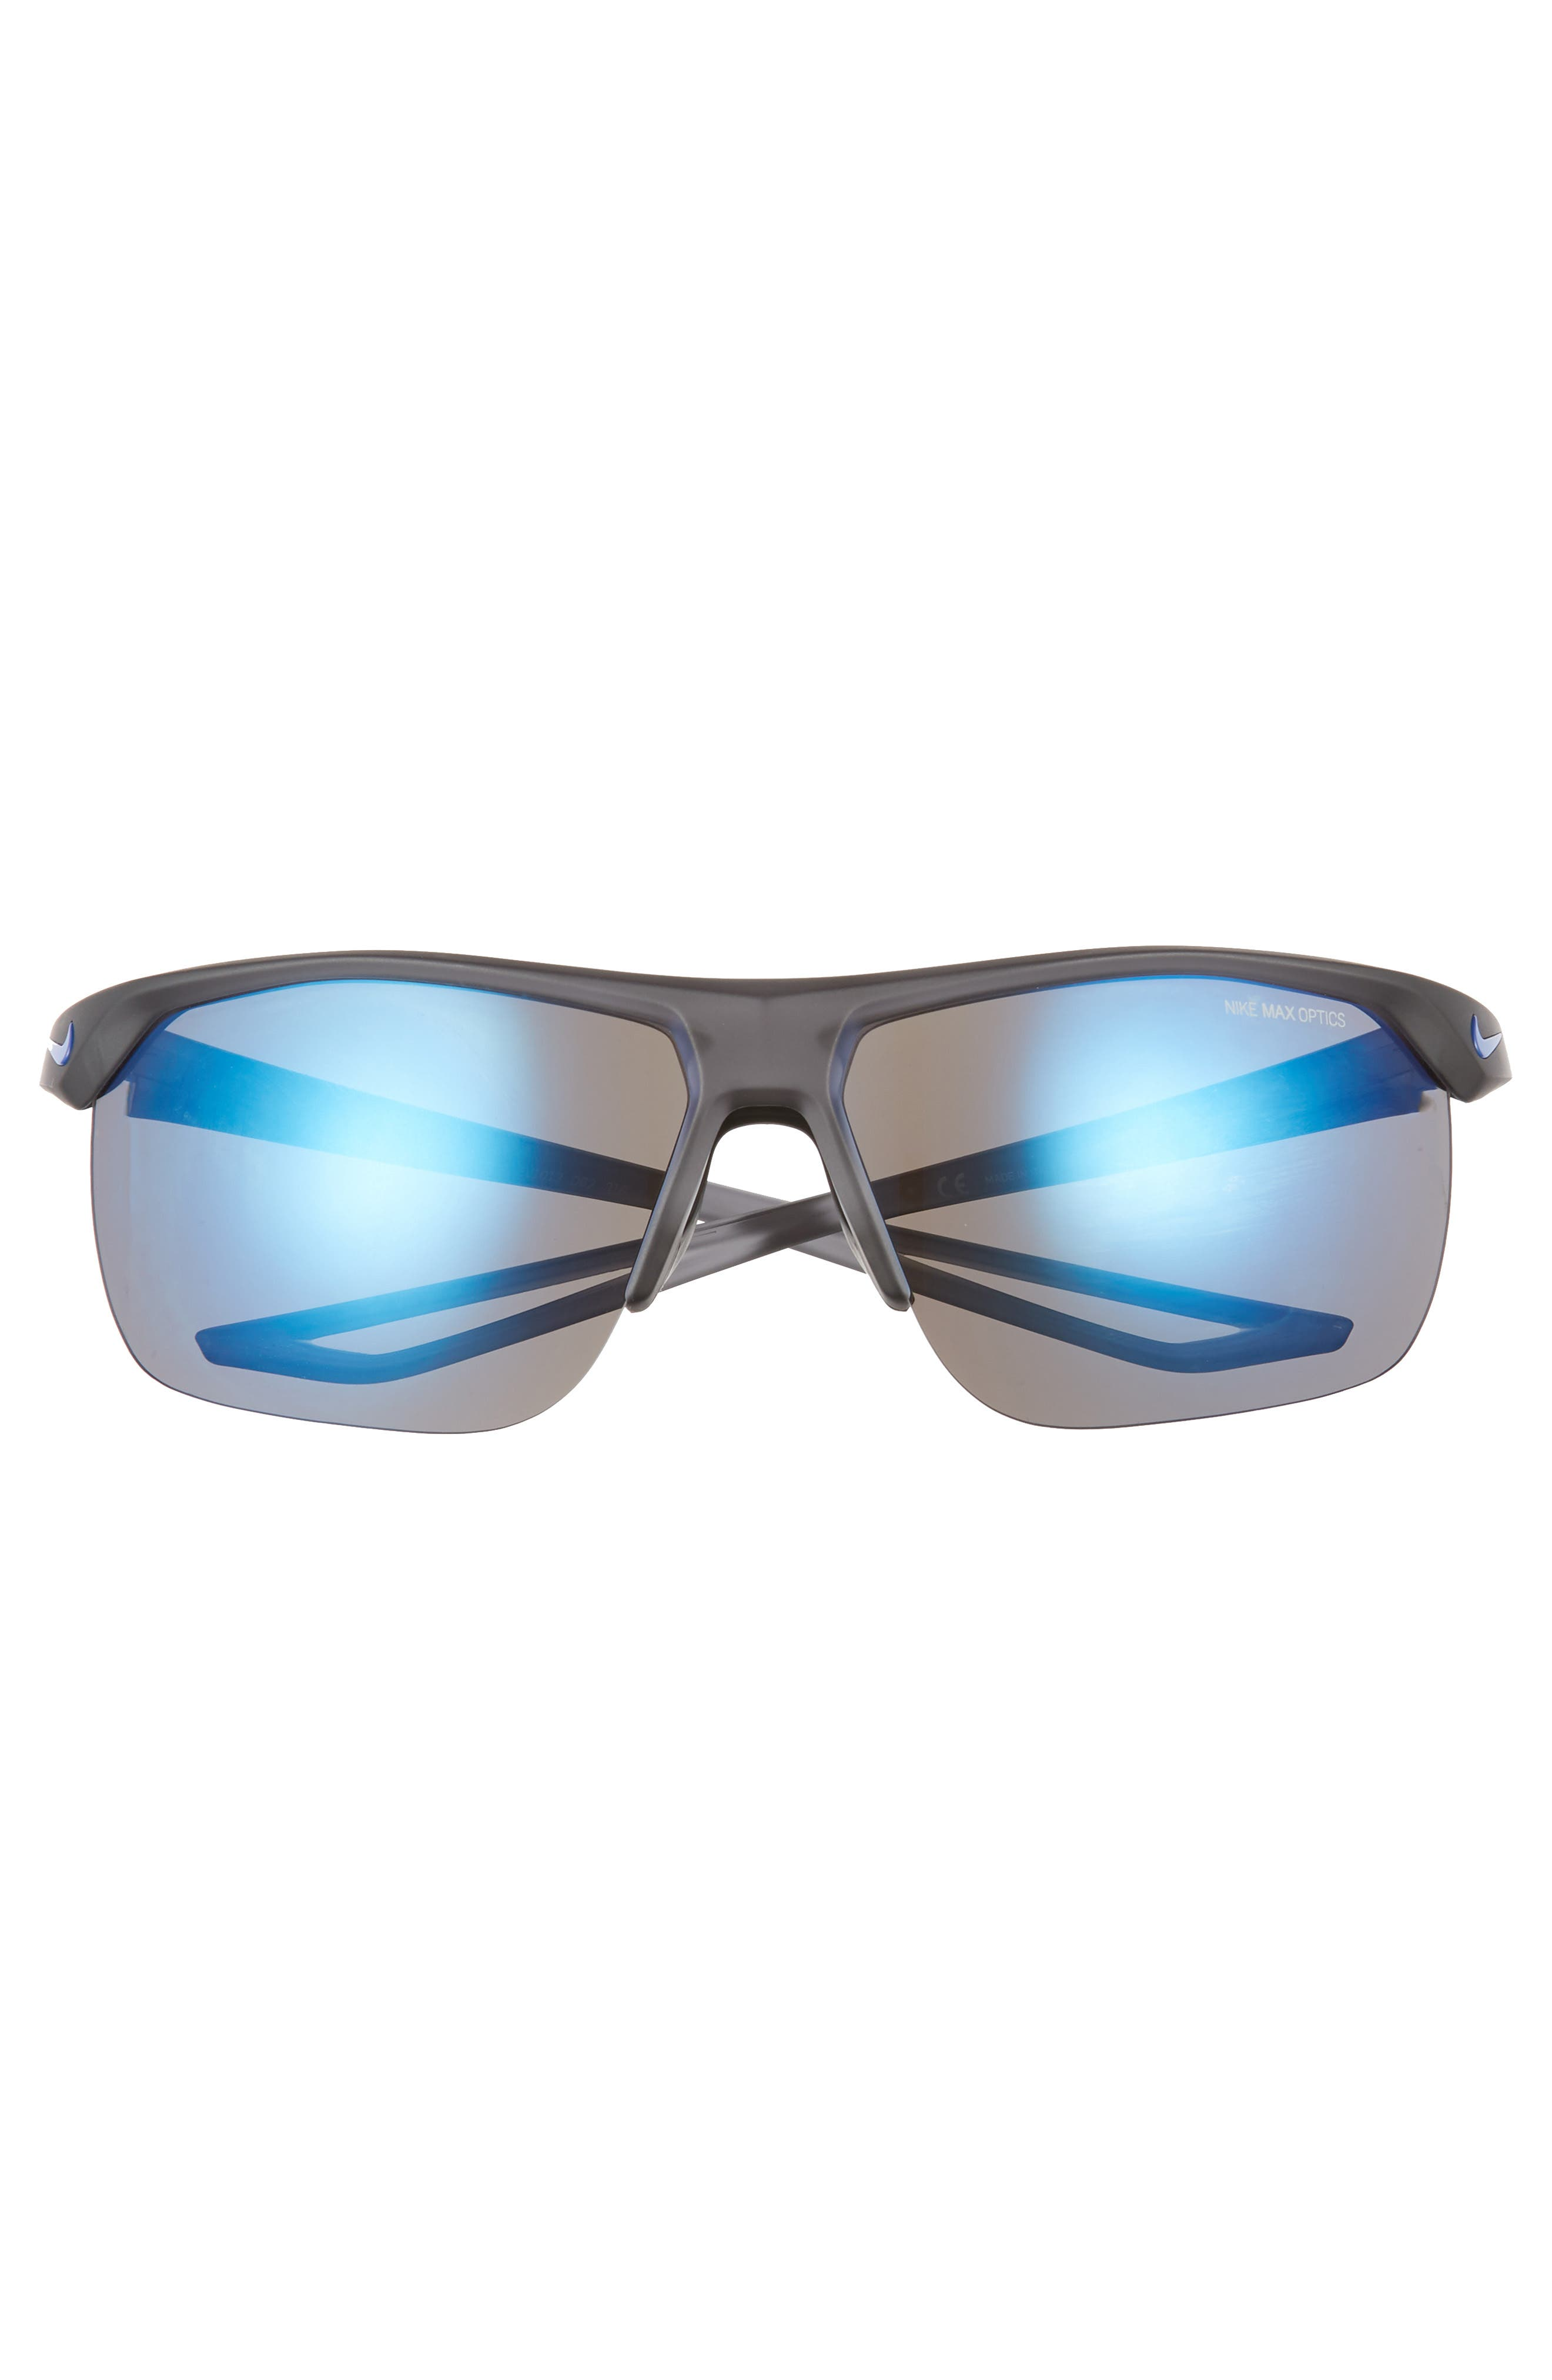 Trainer R 67mm Oversize Sunglasses,                             Alternate thumbnail 2, color,                             MATTE GREY/ GREY BLUE MIRROR